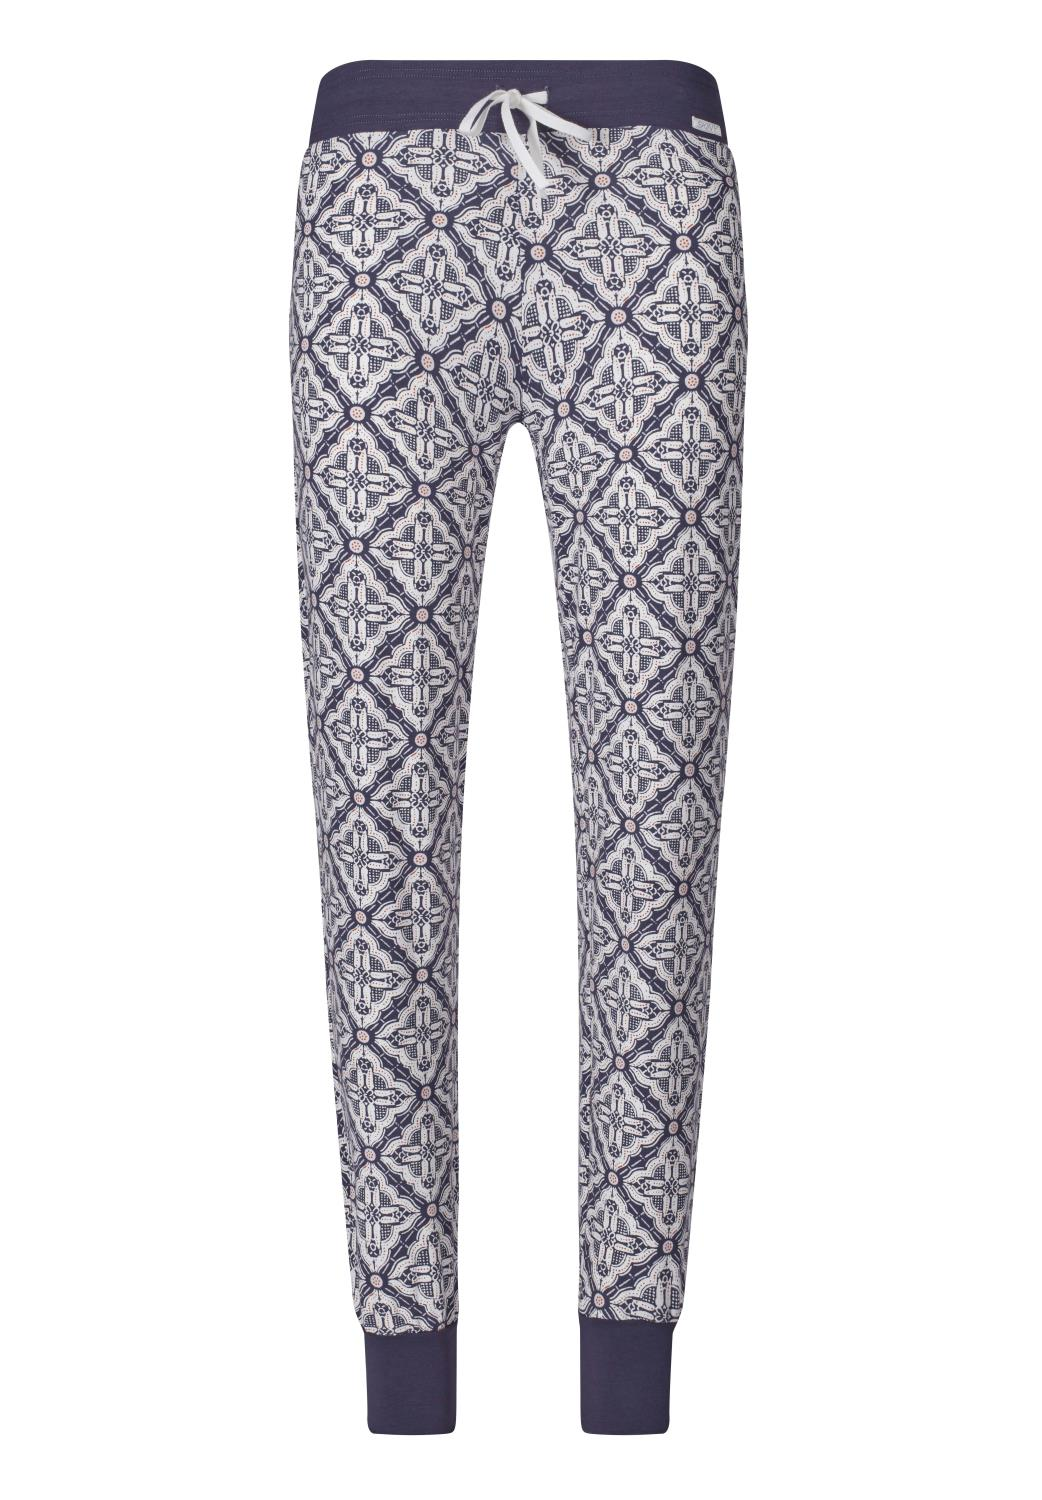 Skiny L. pants long, purpose sleep, purple mosaic